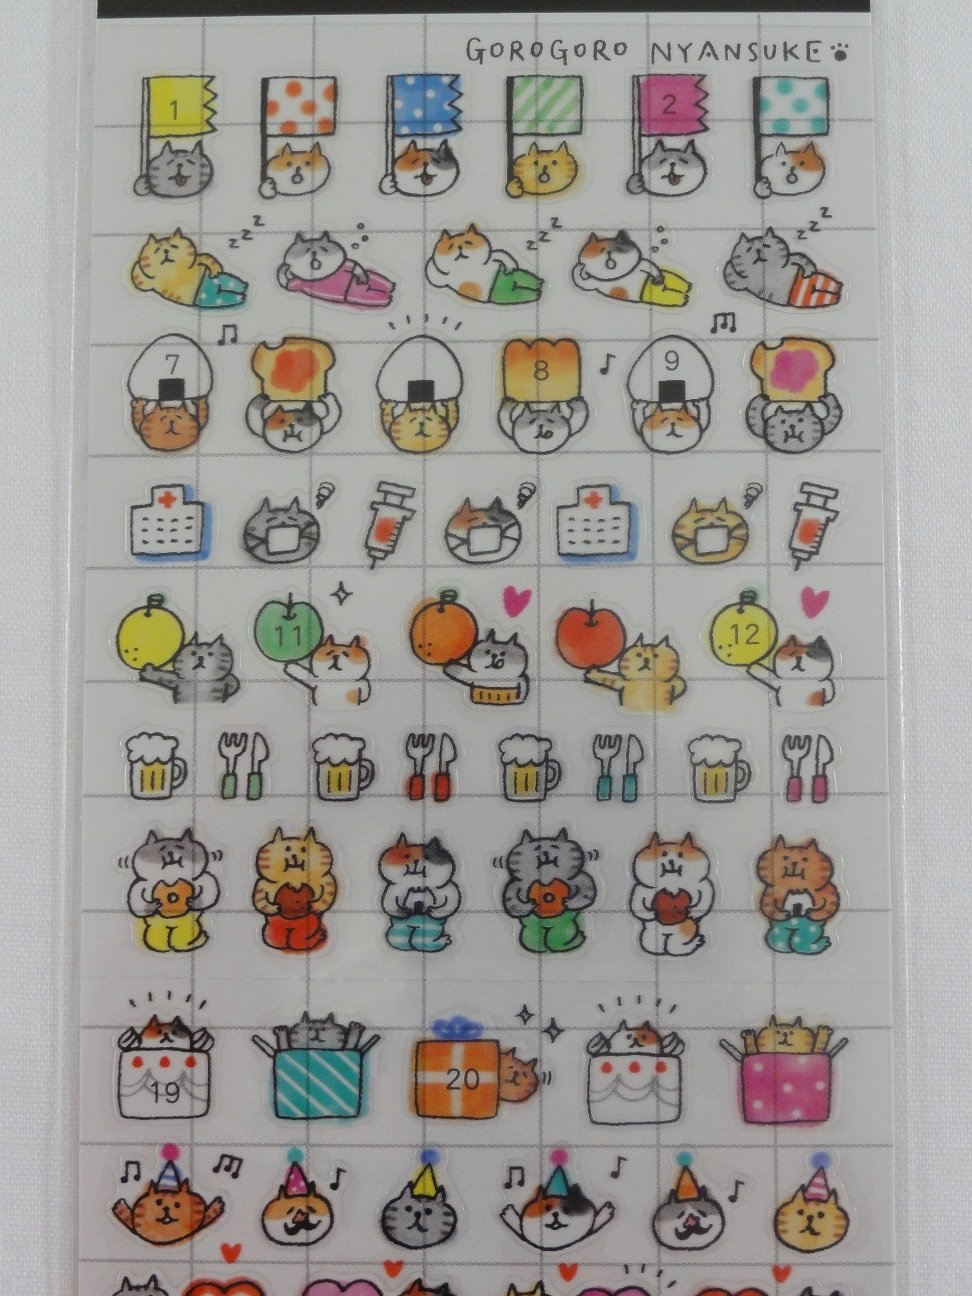 Cute Kawaii Mind Wave Cat Schedule Sticker Sheet - for Journal Planner Craft Organizer